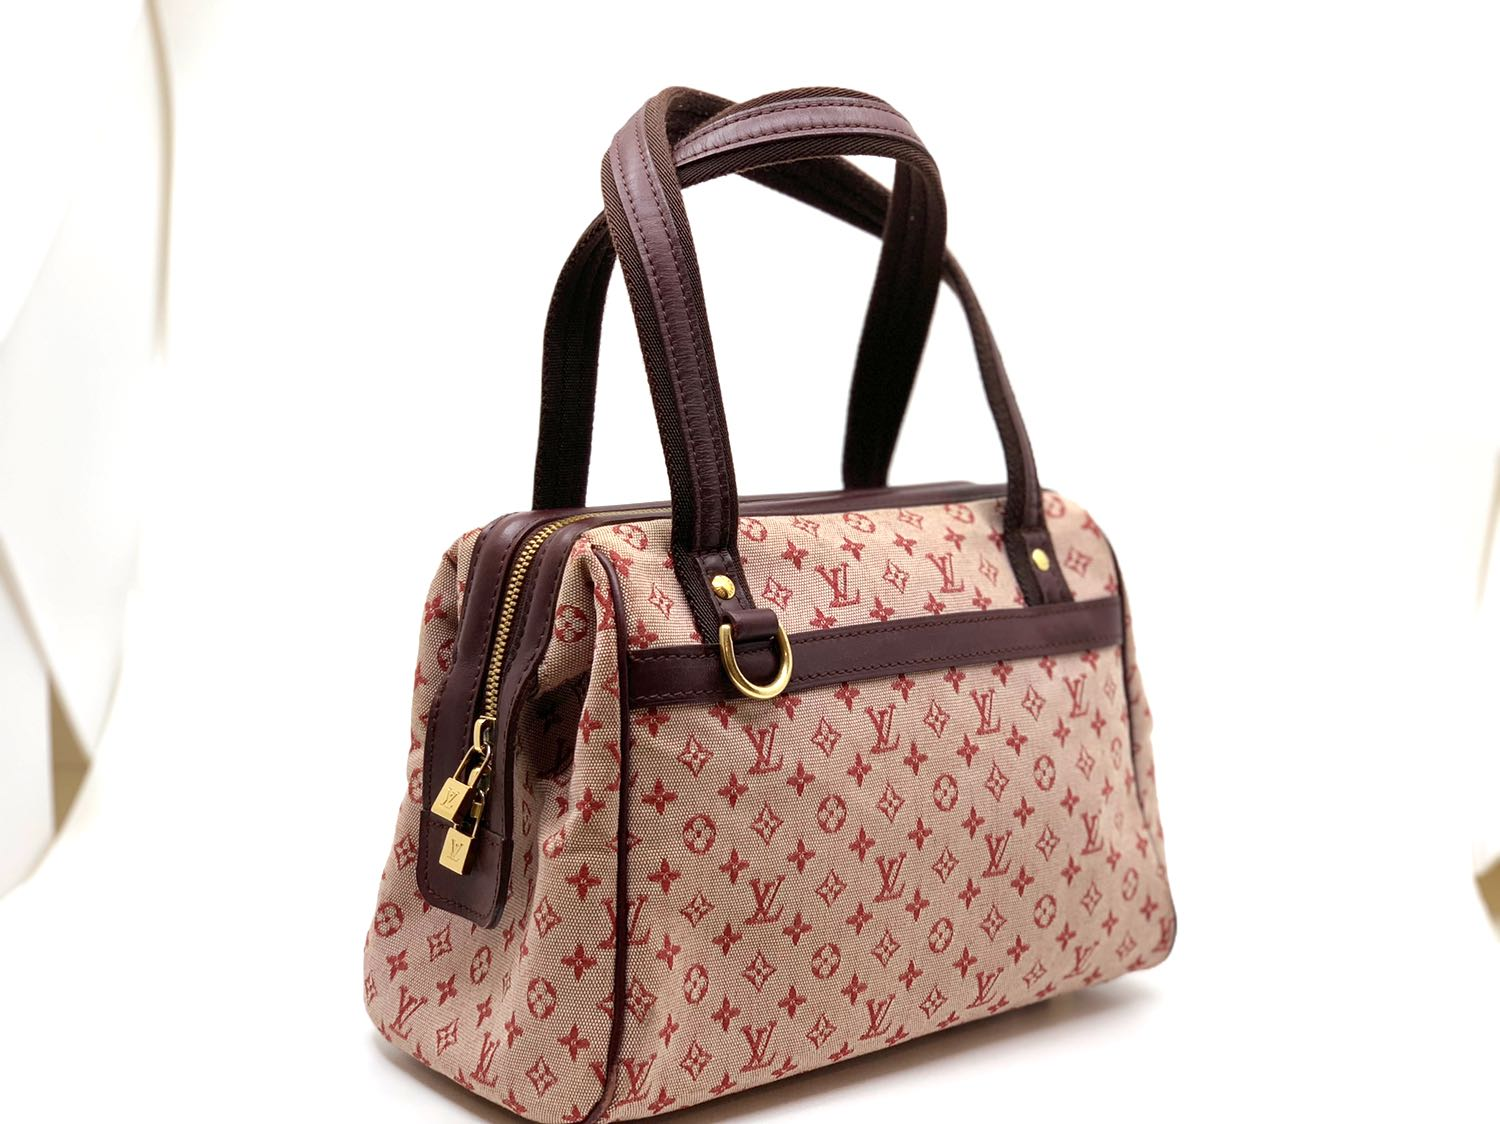 44ad5151d Louis Vuitton Cherry Monogram Mini Lin Josephine Bag PM, Luxury ...